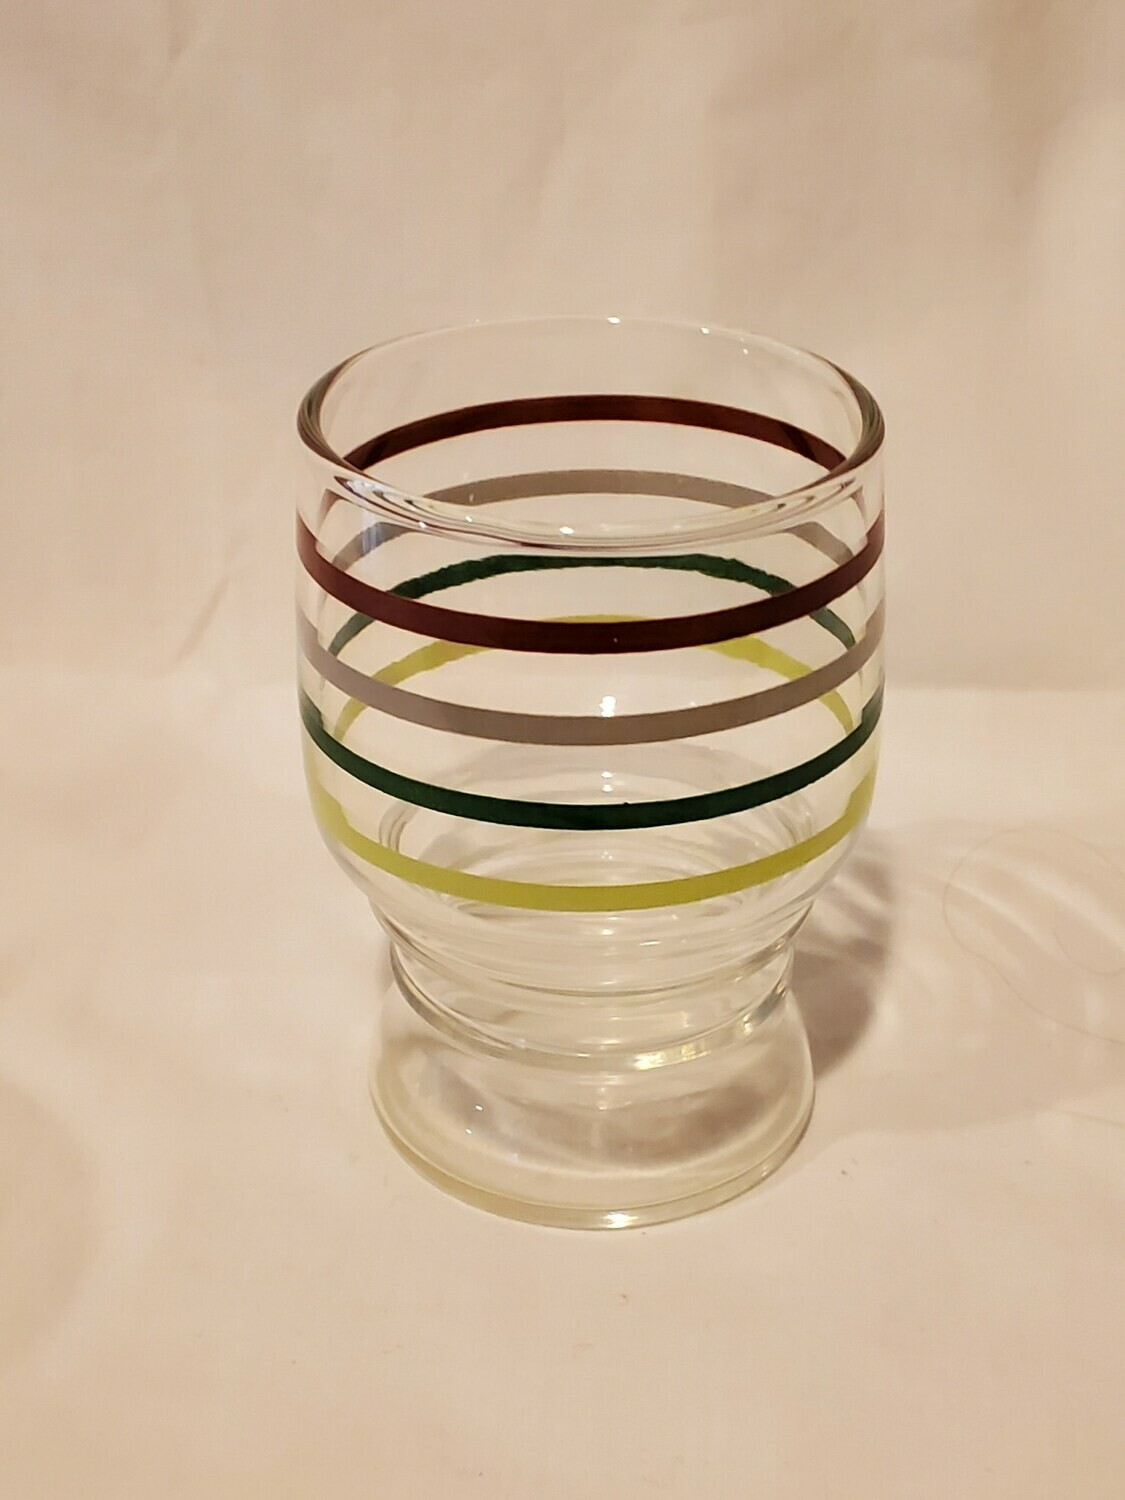 Libbey's, Banded Rings, Juice Glasses, Set of 4